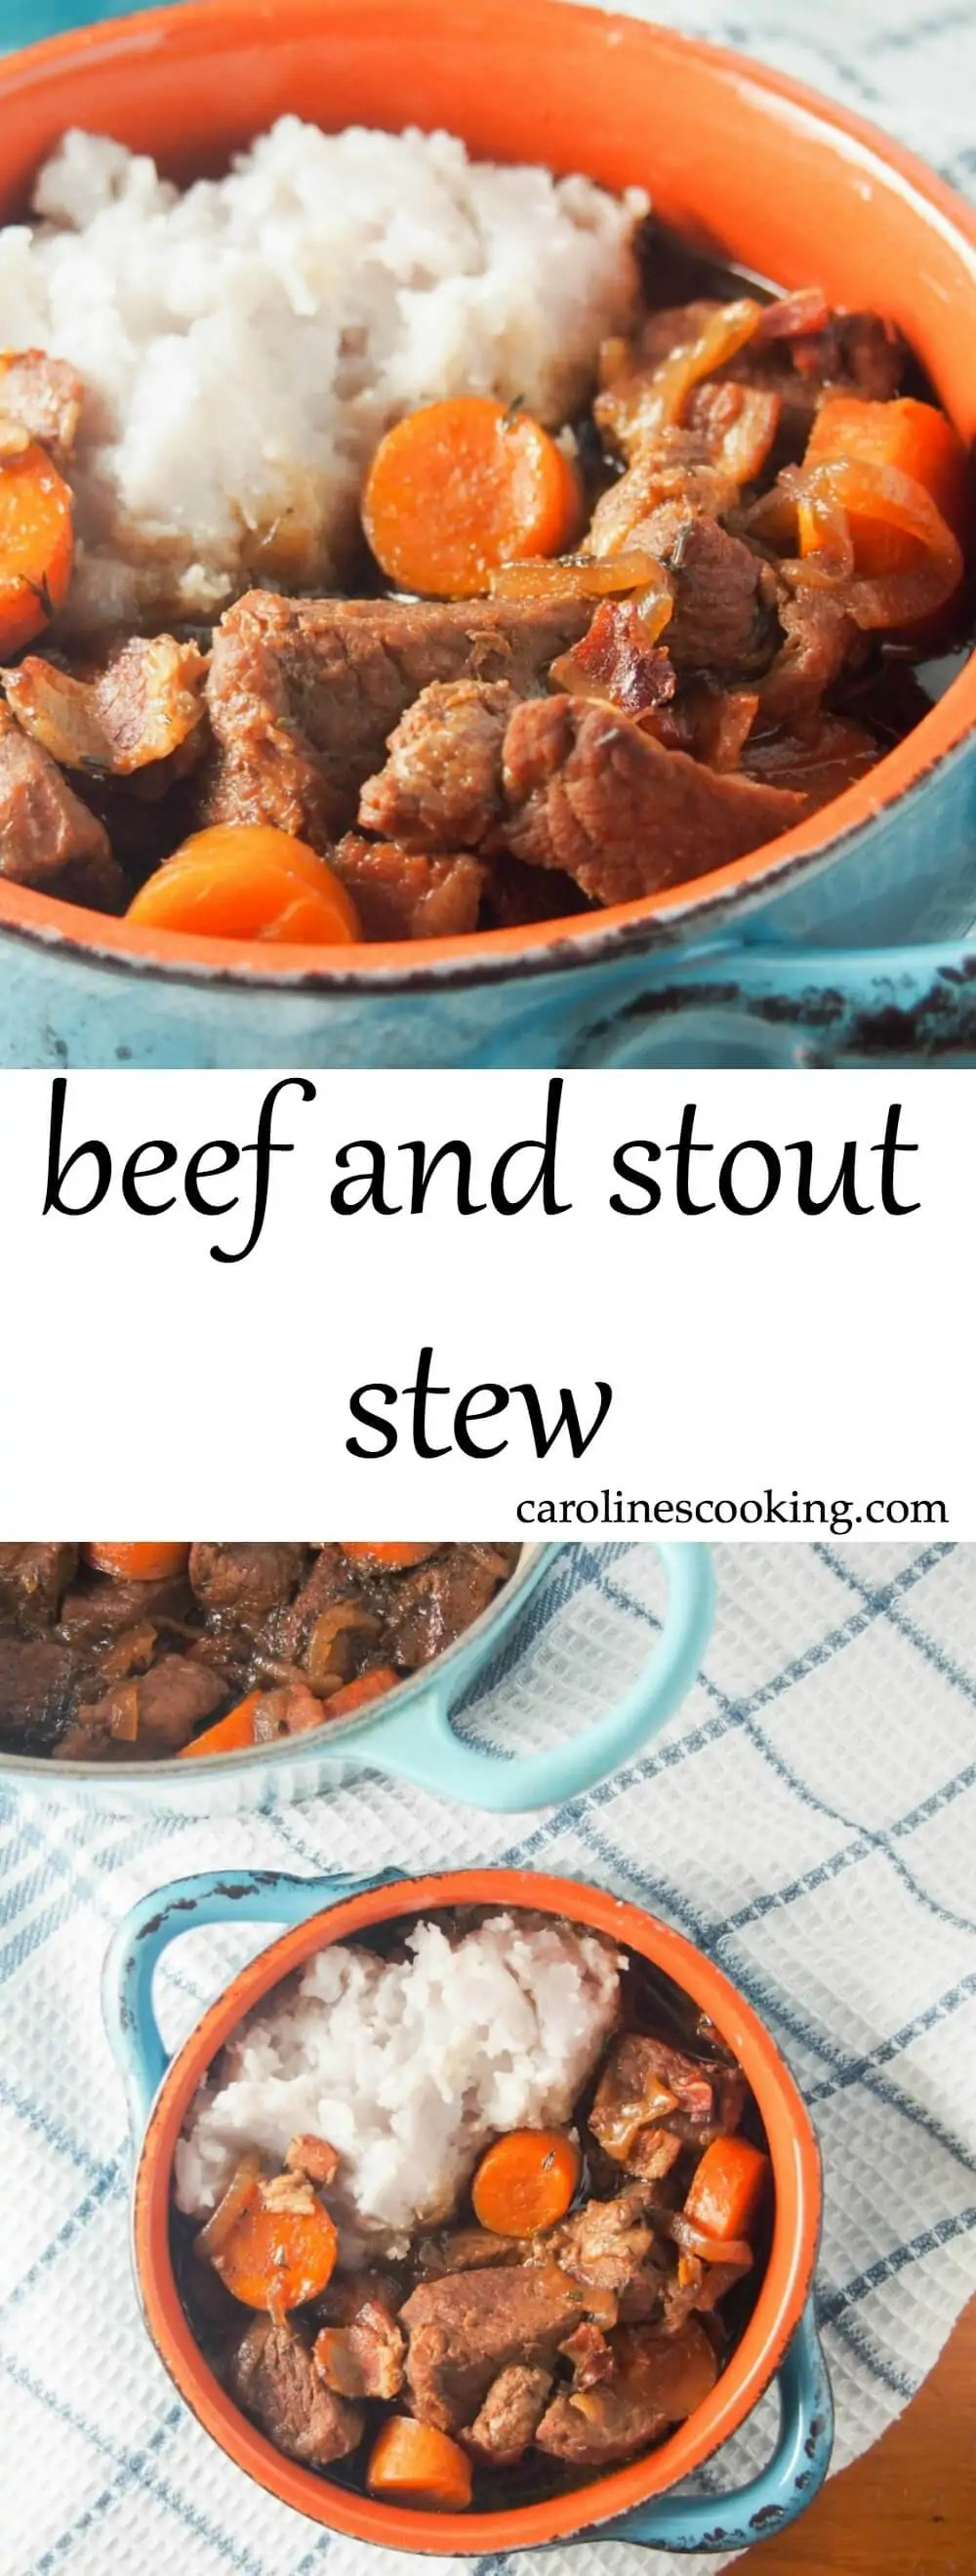 This beef and stout stew is easy to make and a hearty, comforting meal. The stout gives a wonderful rich flavor & tenderizes the beef. Great on a cold day (as well as to celebrate St Patrick's Day)